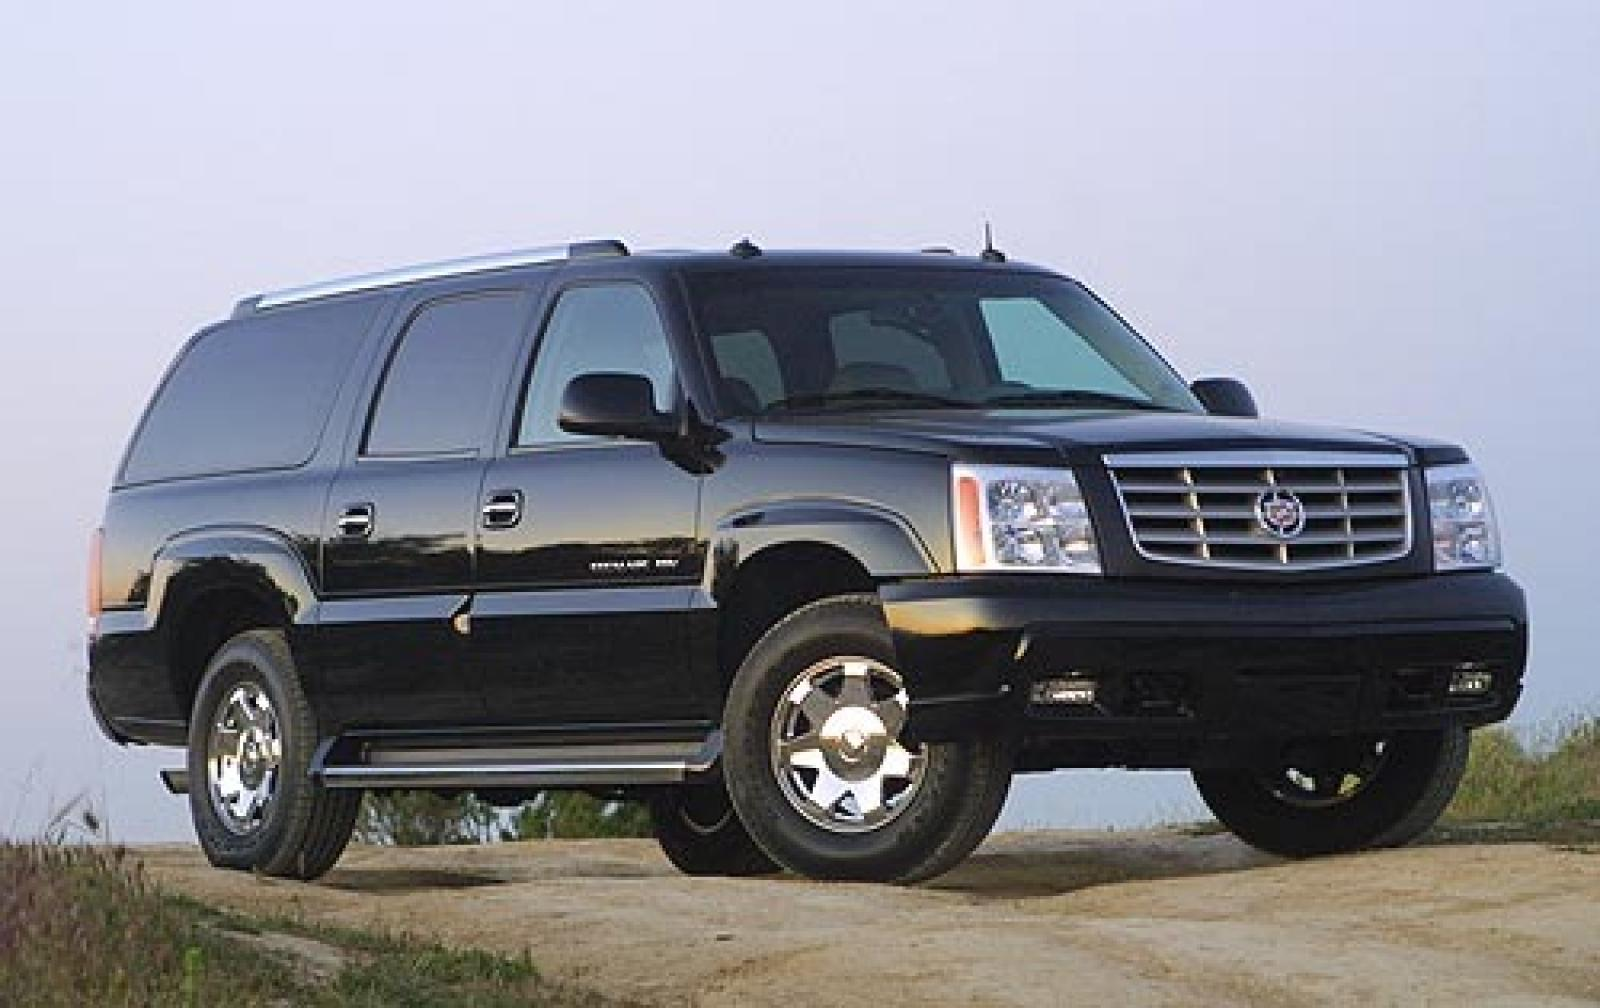 2004 cadillac escalade esv information and photos zombiedrive. Black Bedroom Furniture Sets. Home Design Ideas